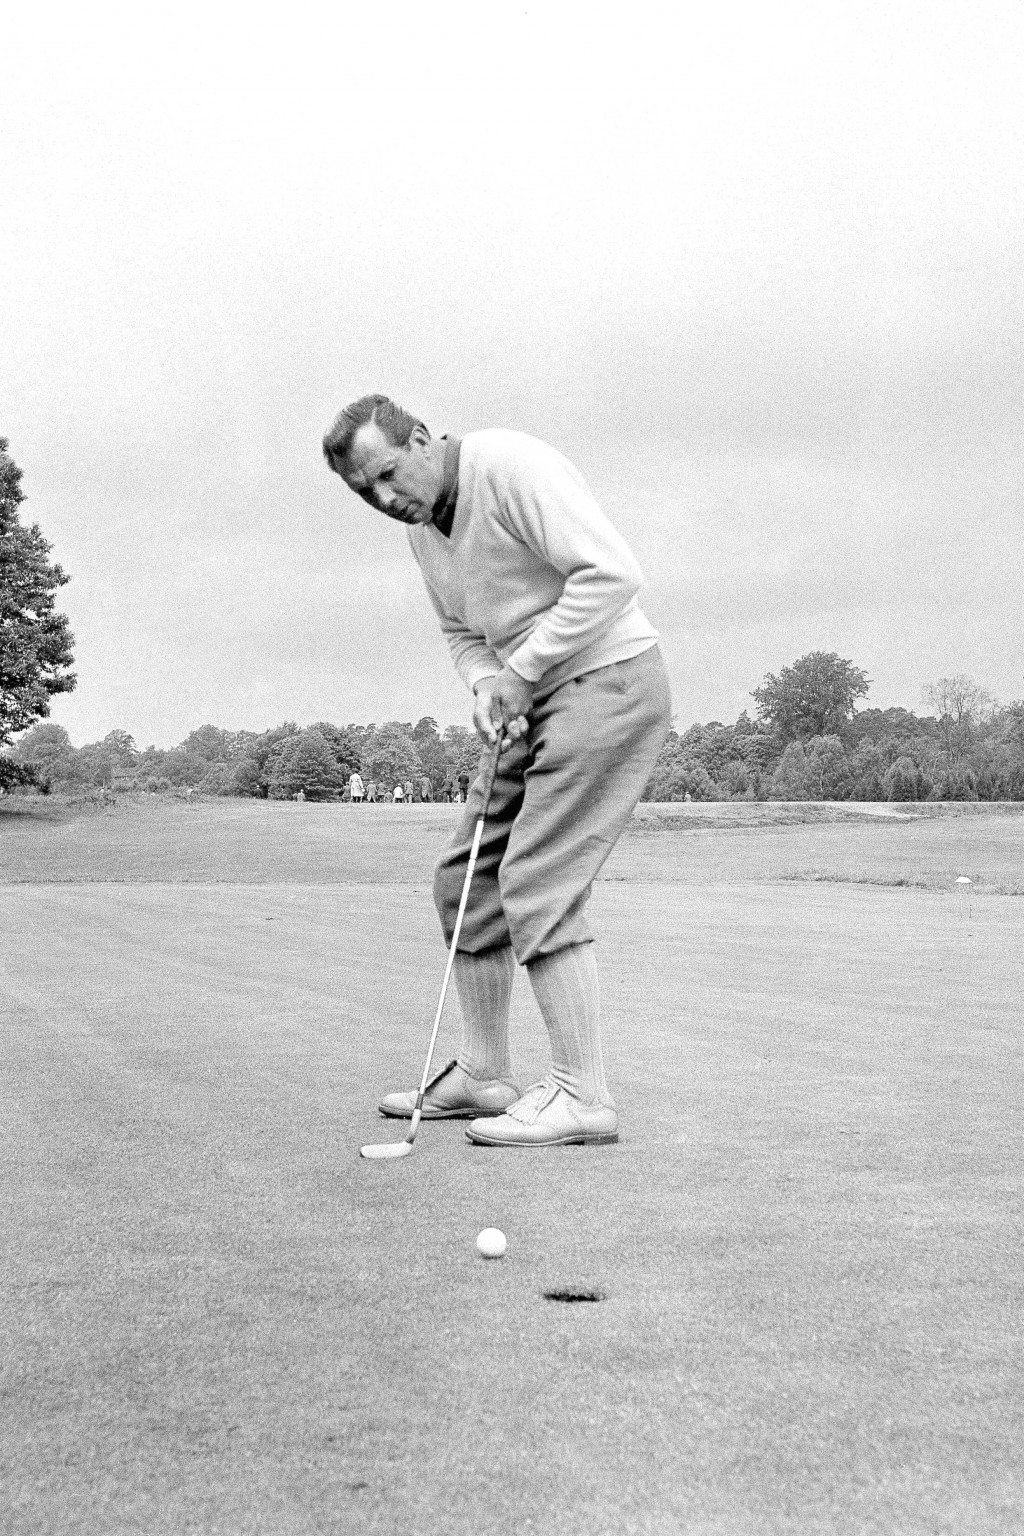 FILE - In this June 9, 1960, file photo, Max Faulkner putts at Wentworth Club in Virginia Water, England. The British Open returns to Royal Portrush o